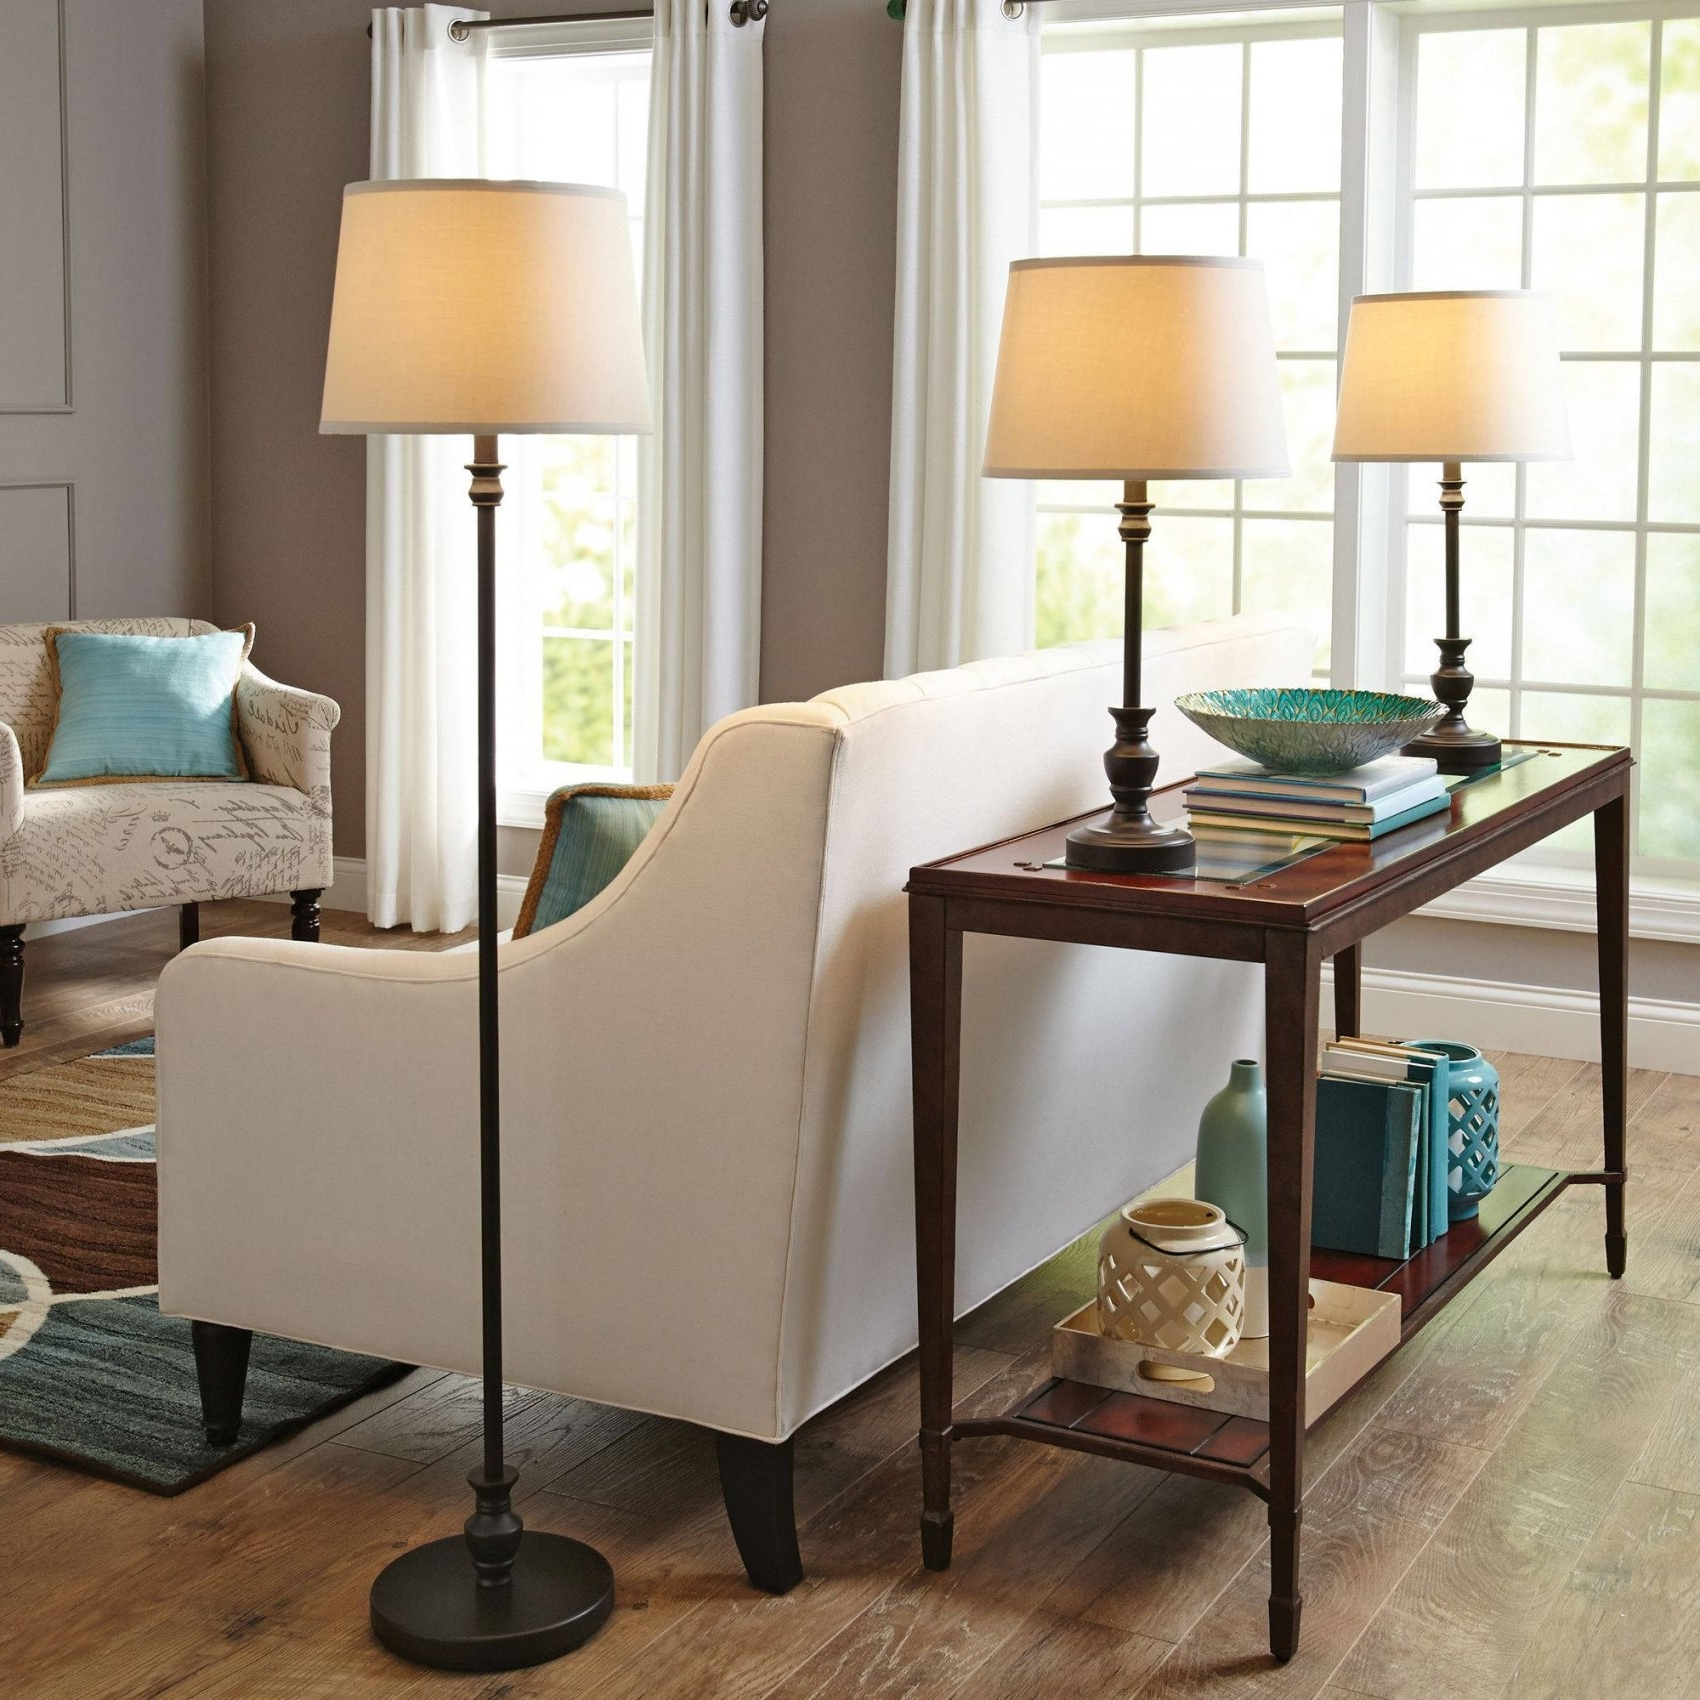 Bronze Living Room Table Lamps In Latest Better Homes & Gardens 3 Piece Lamp Set, Bronze Finish – Walmart (View 17 of 20)